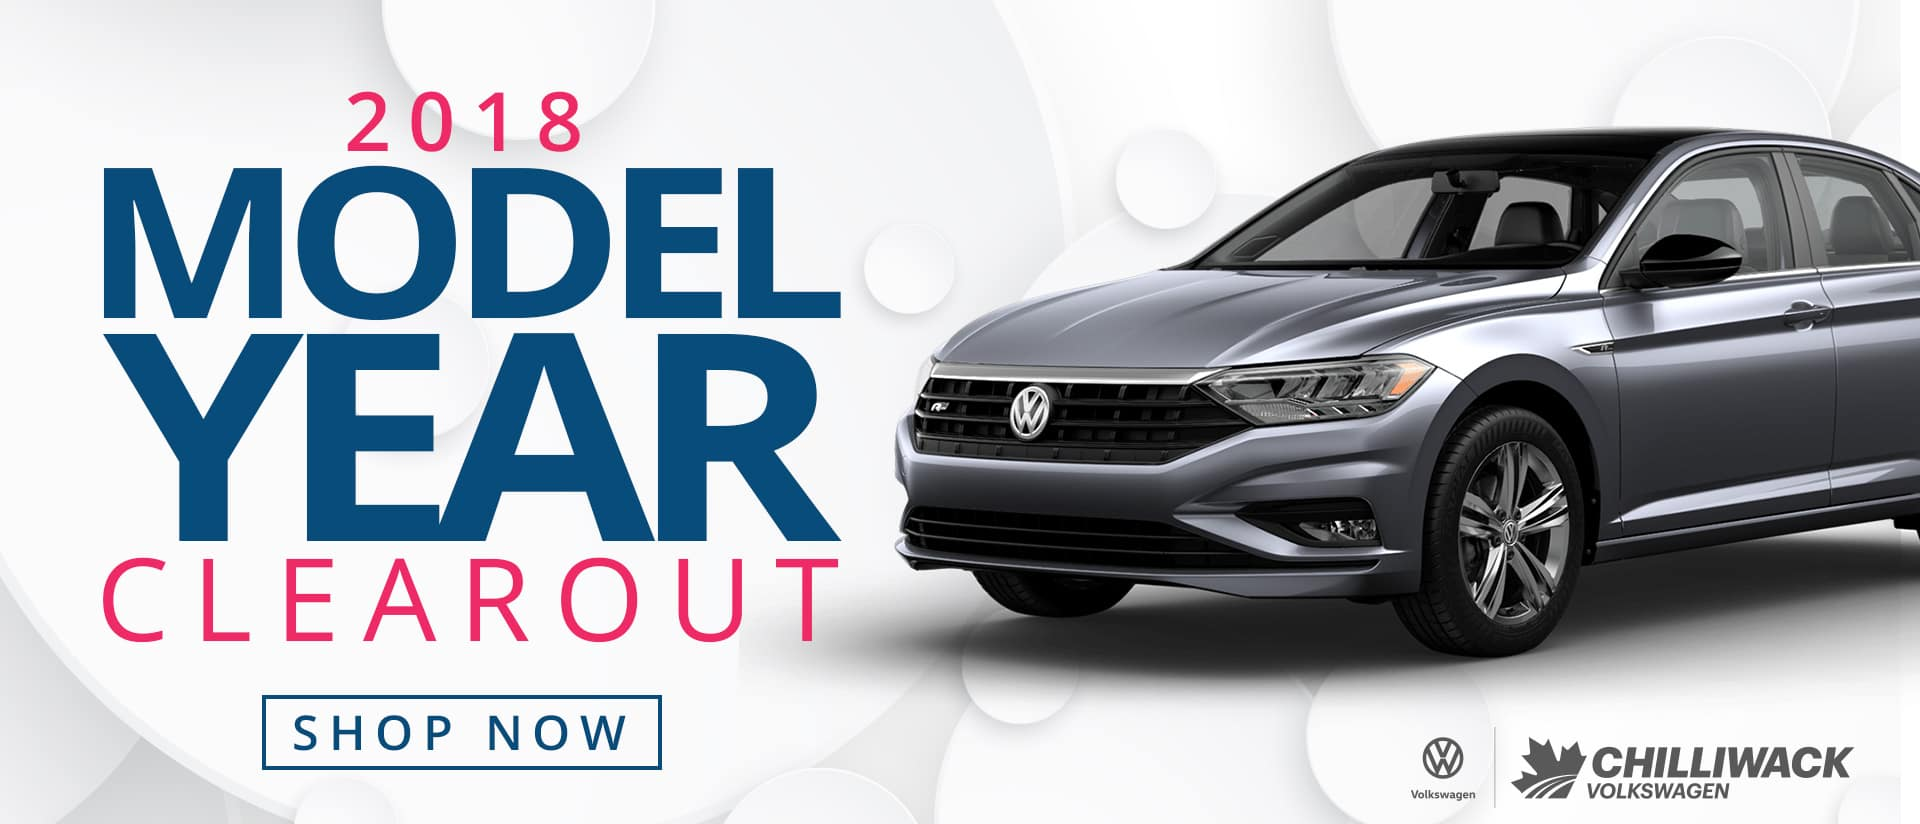 Save on remaining 2018 inventory at Chilliwack Volkswagen!